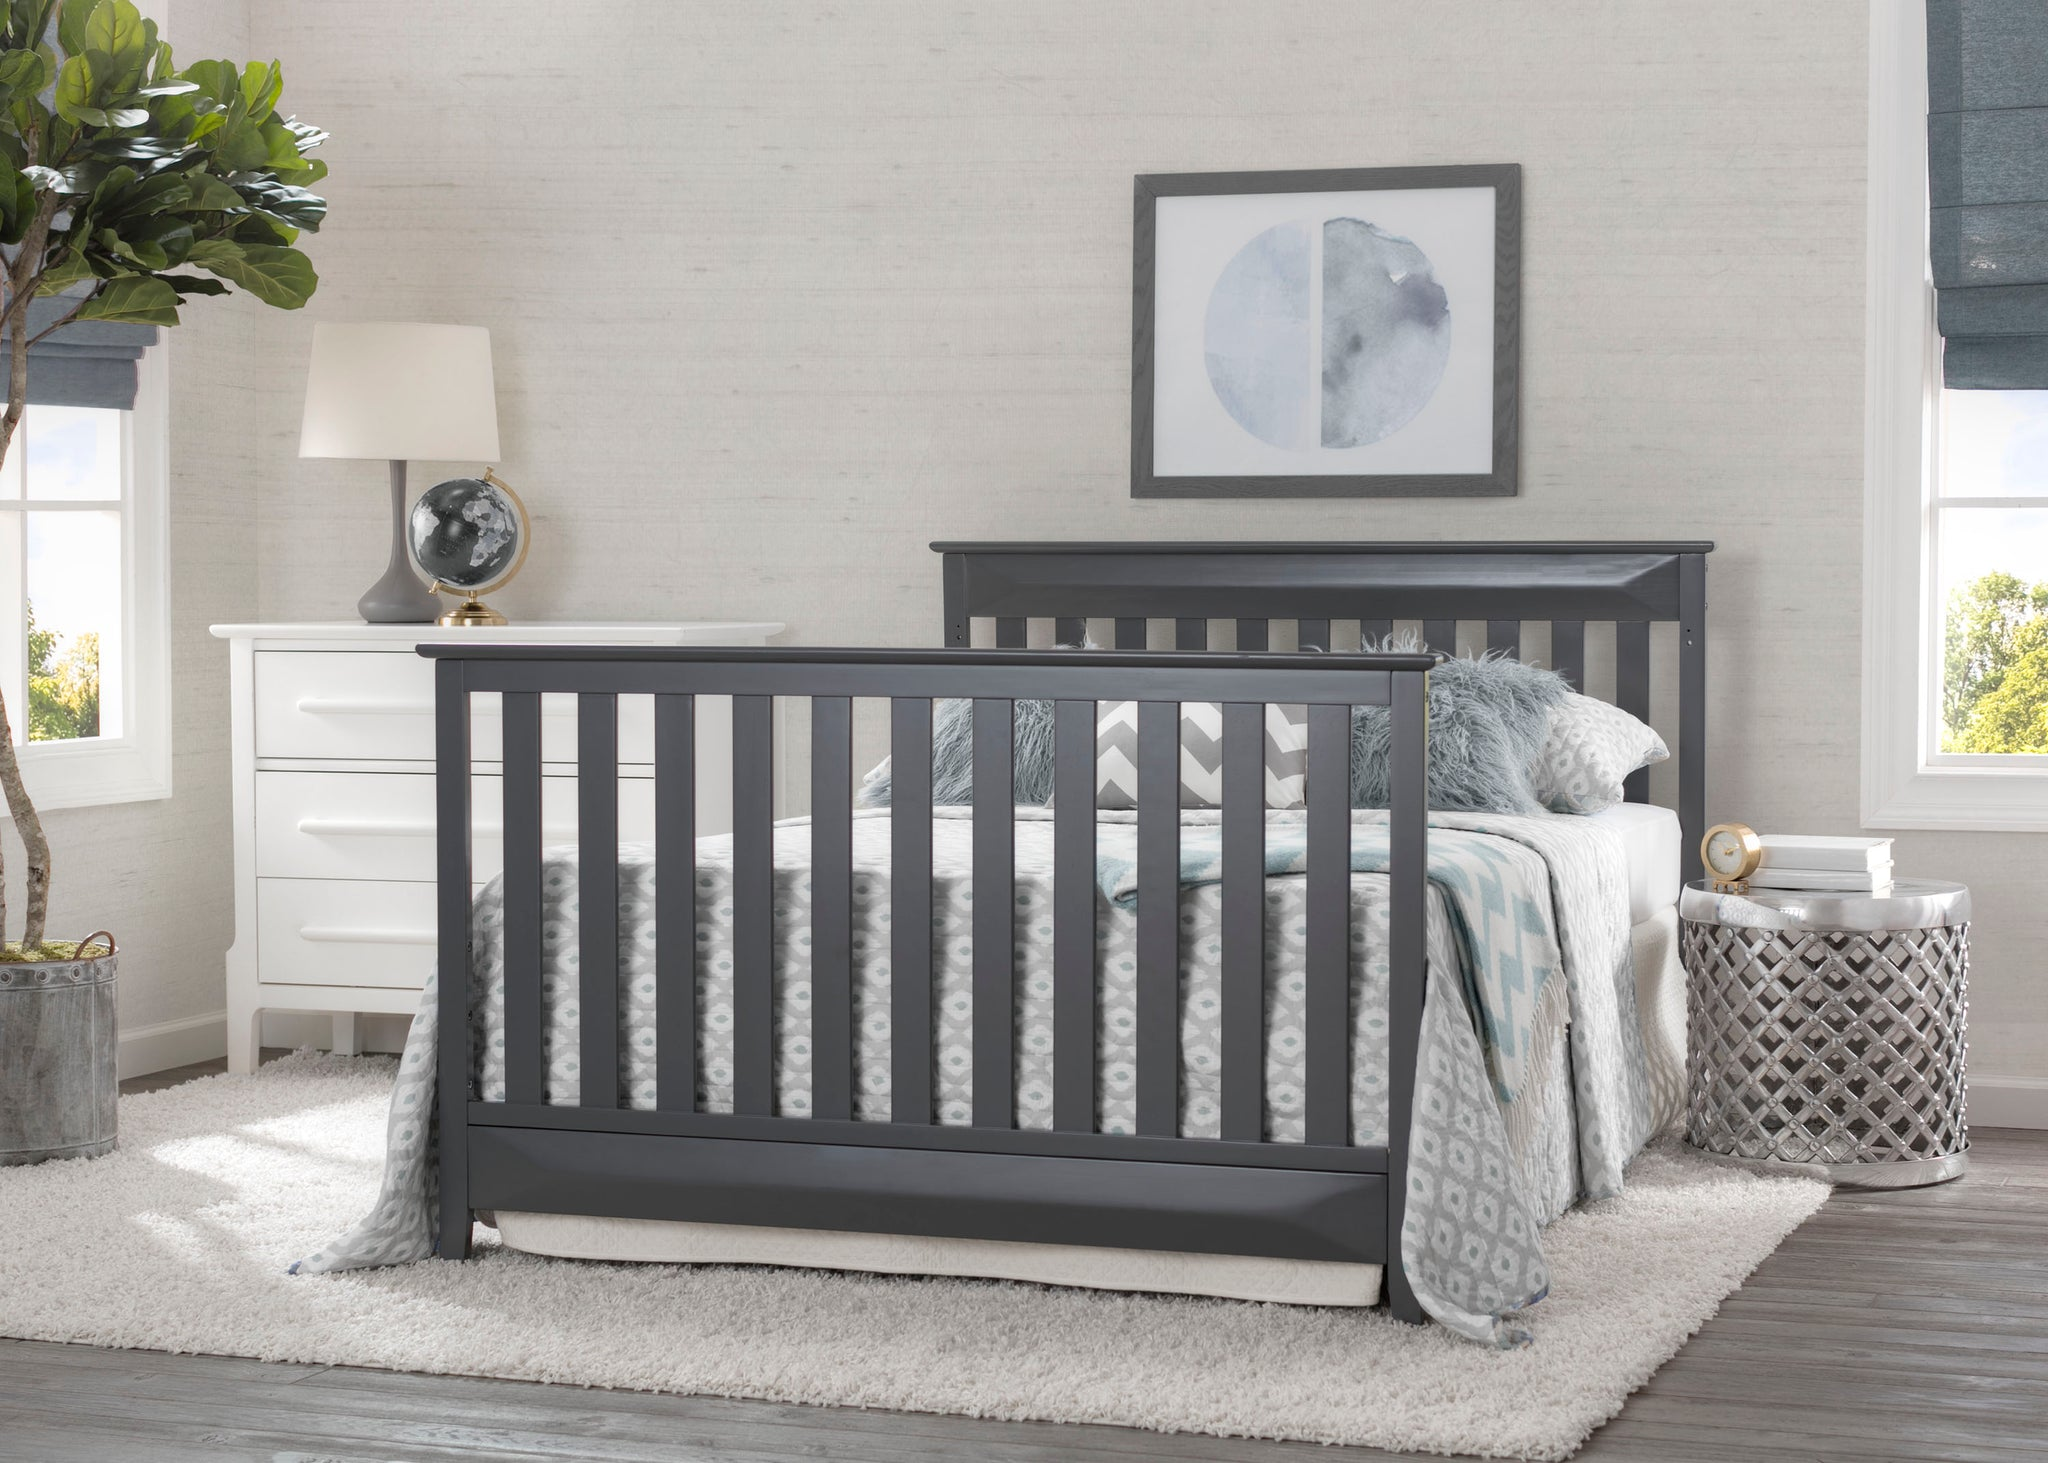 Delta Children Charcoal Grey (029) Cameron 4-in-1 Convertible Baby Crib Full Bed Roomshot a2a